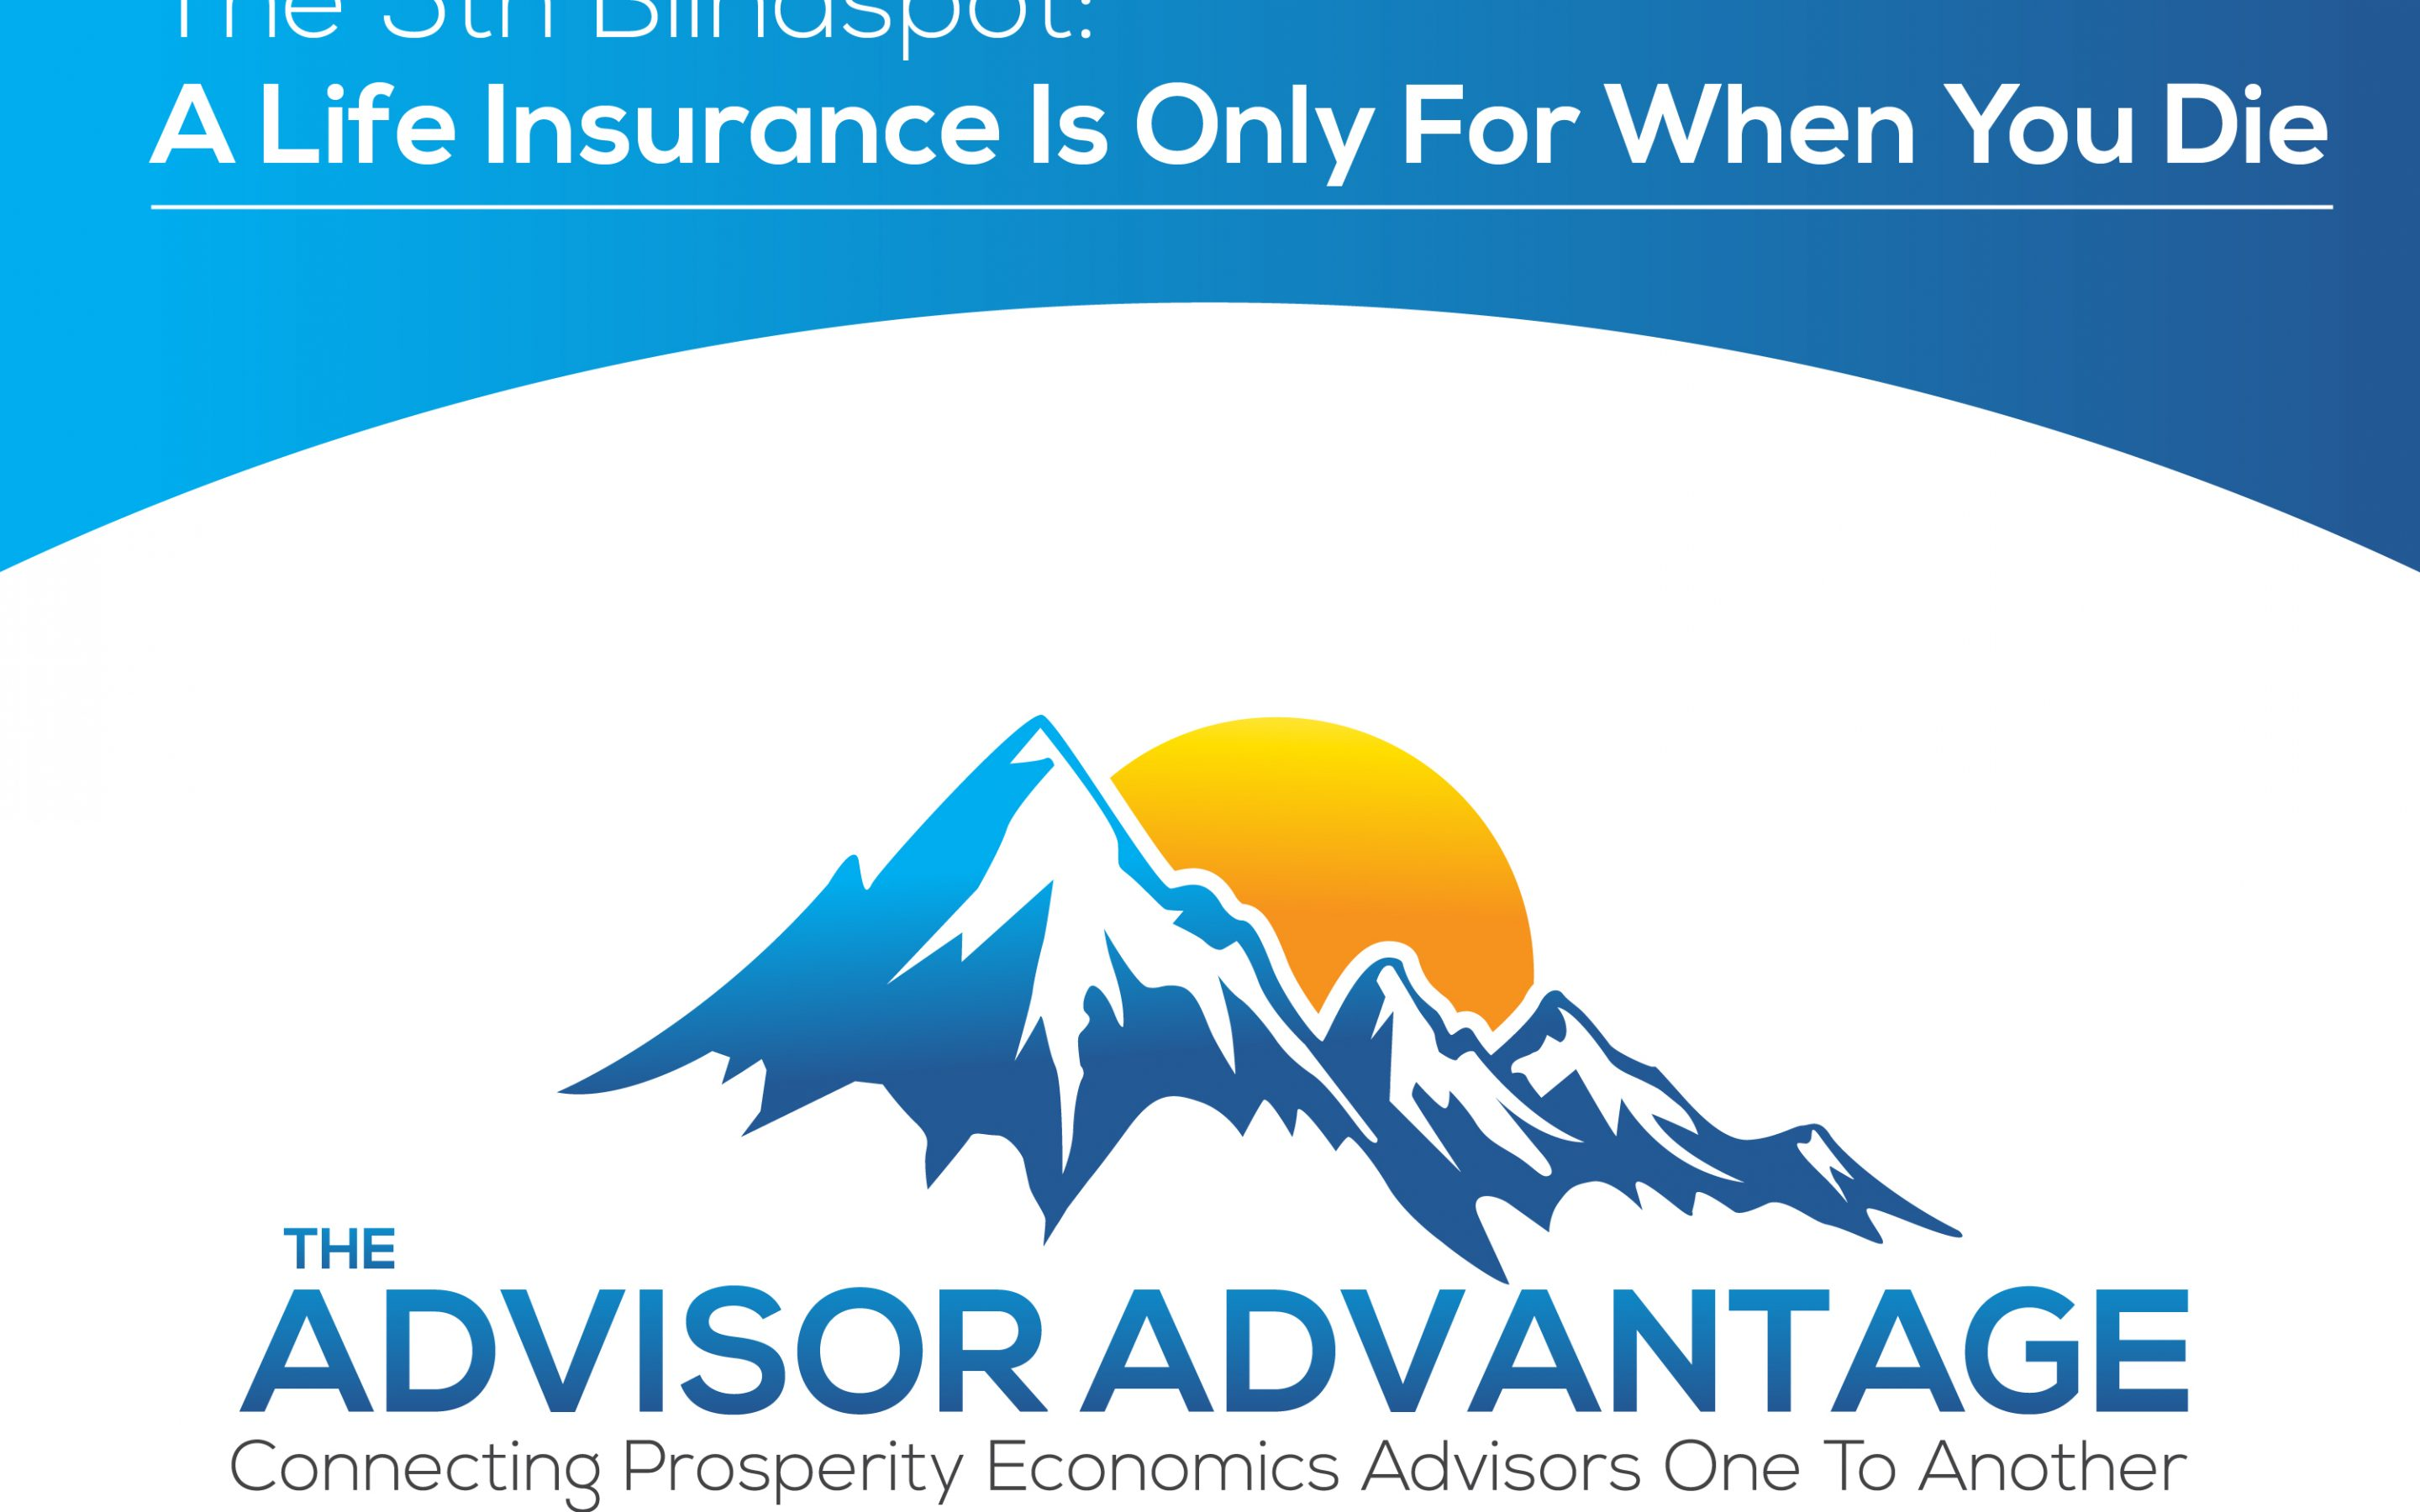 The 5th Blind Spot: A Life Insurance Is Only For When You Die – Episode 111